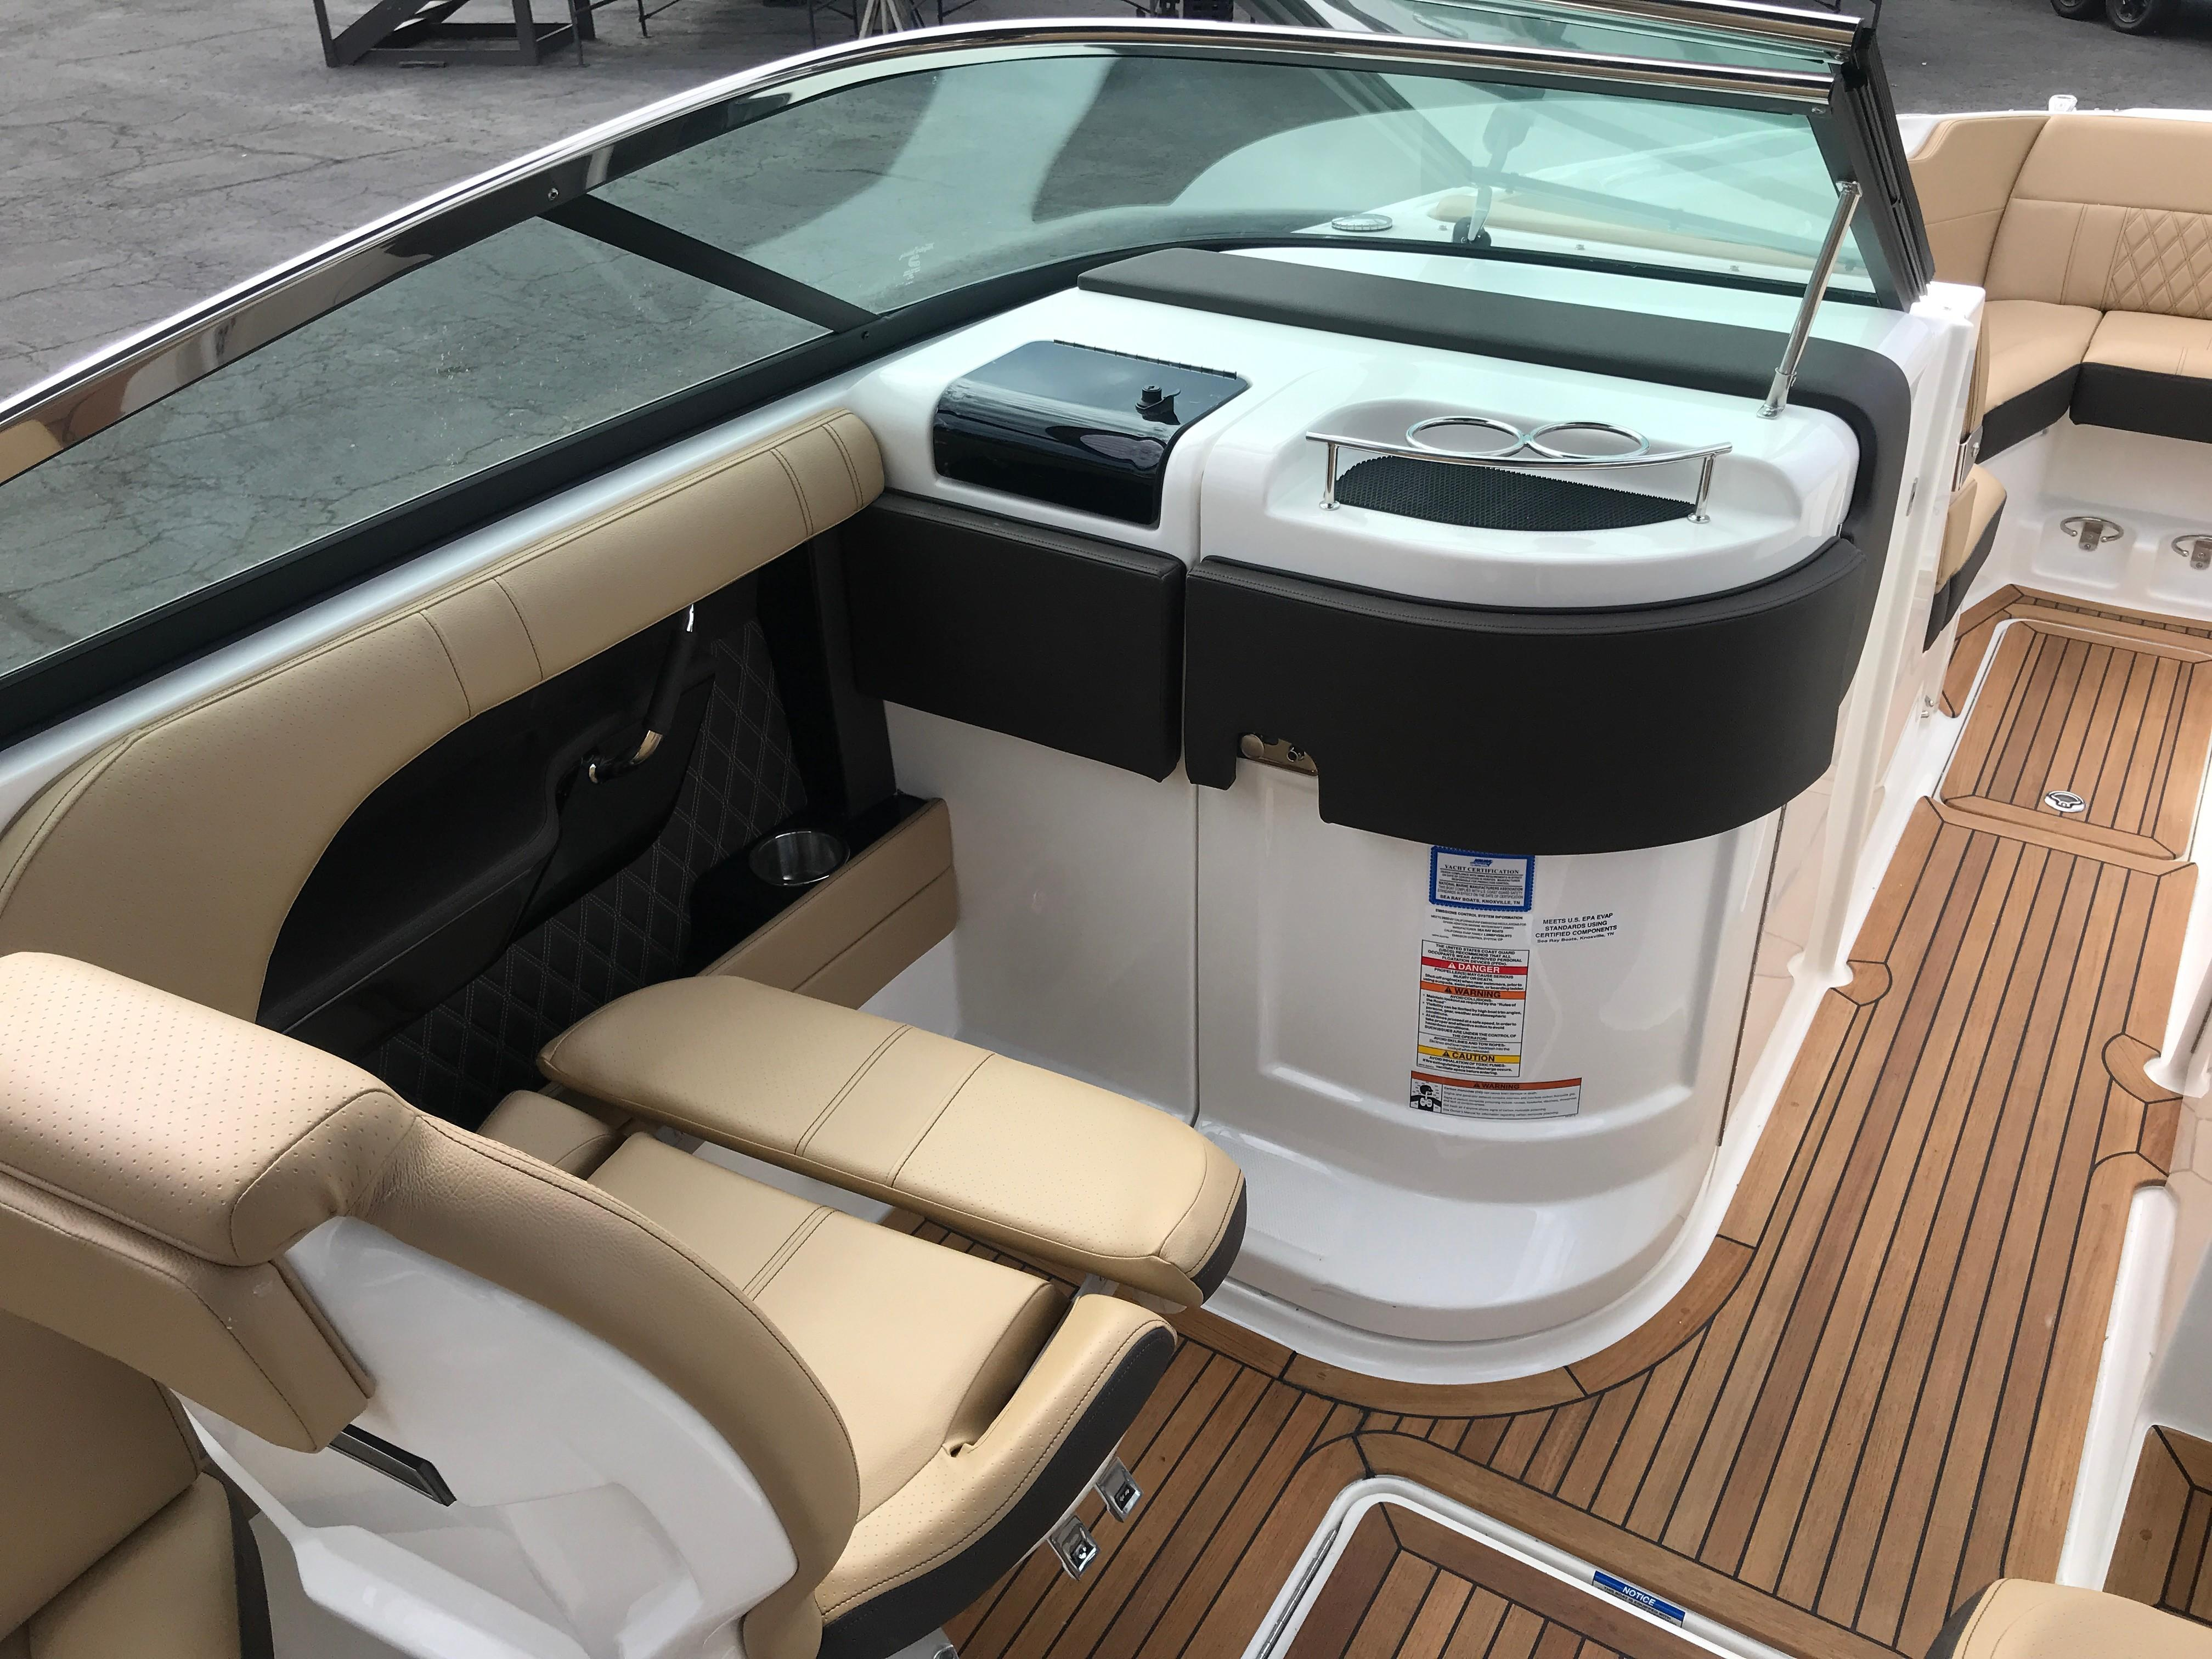 2020 Sea Ray SLX 280 #S1315H inventory image at Sun Country Coastal in Newport Beach